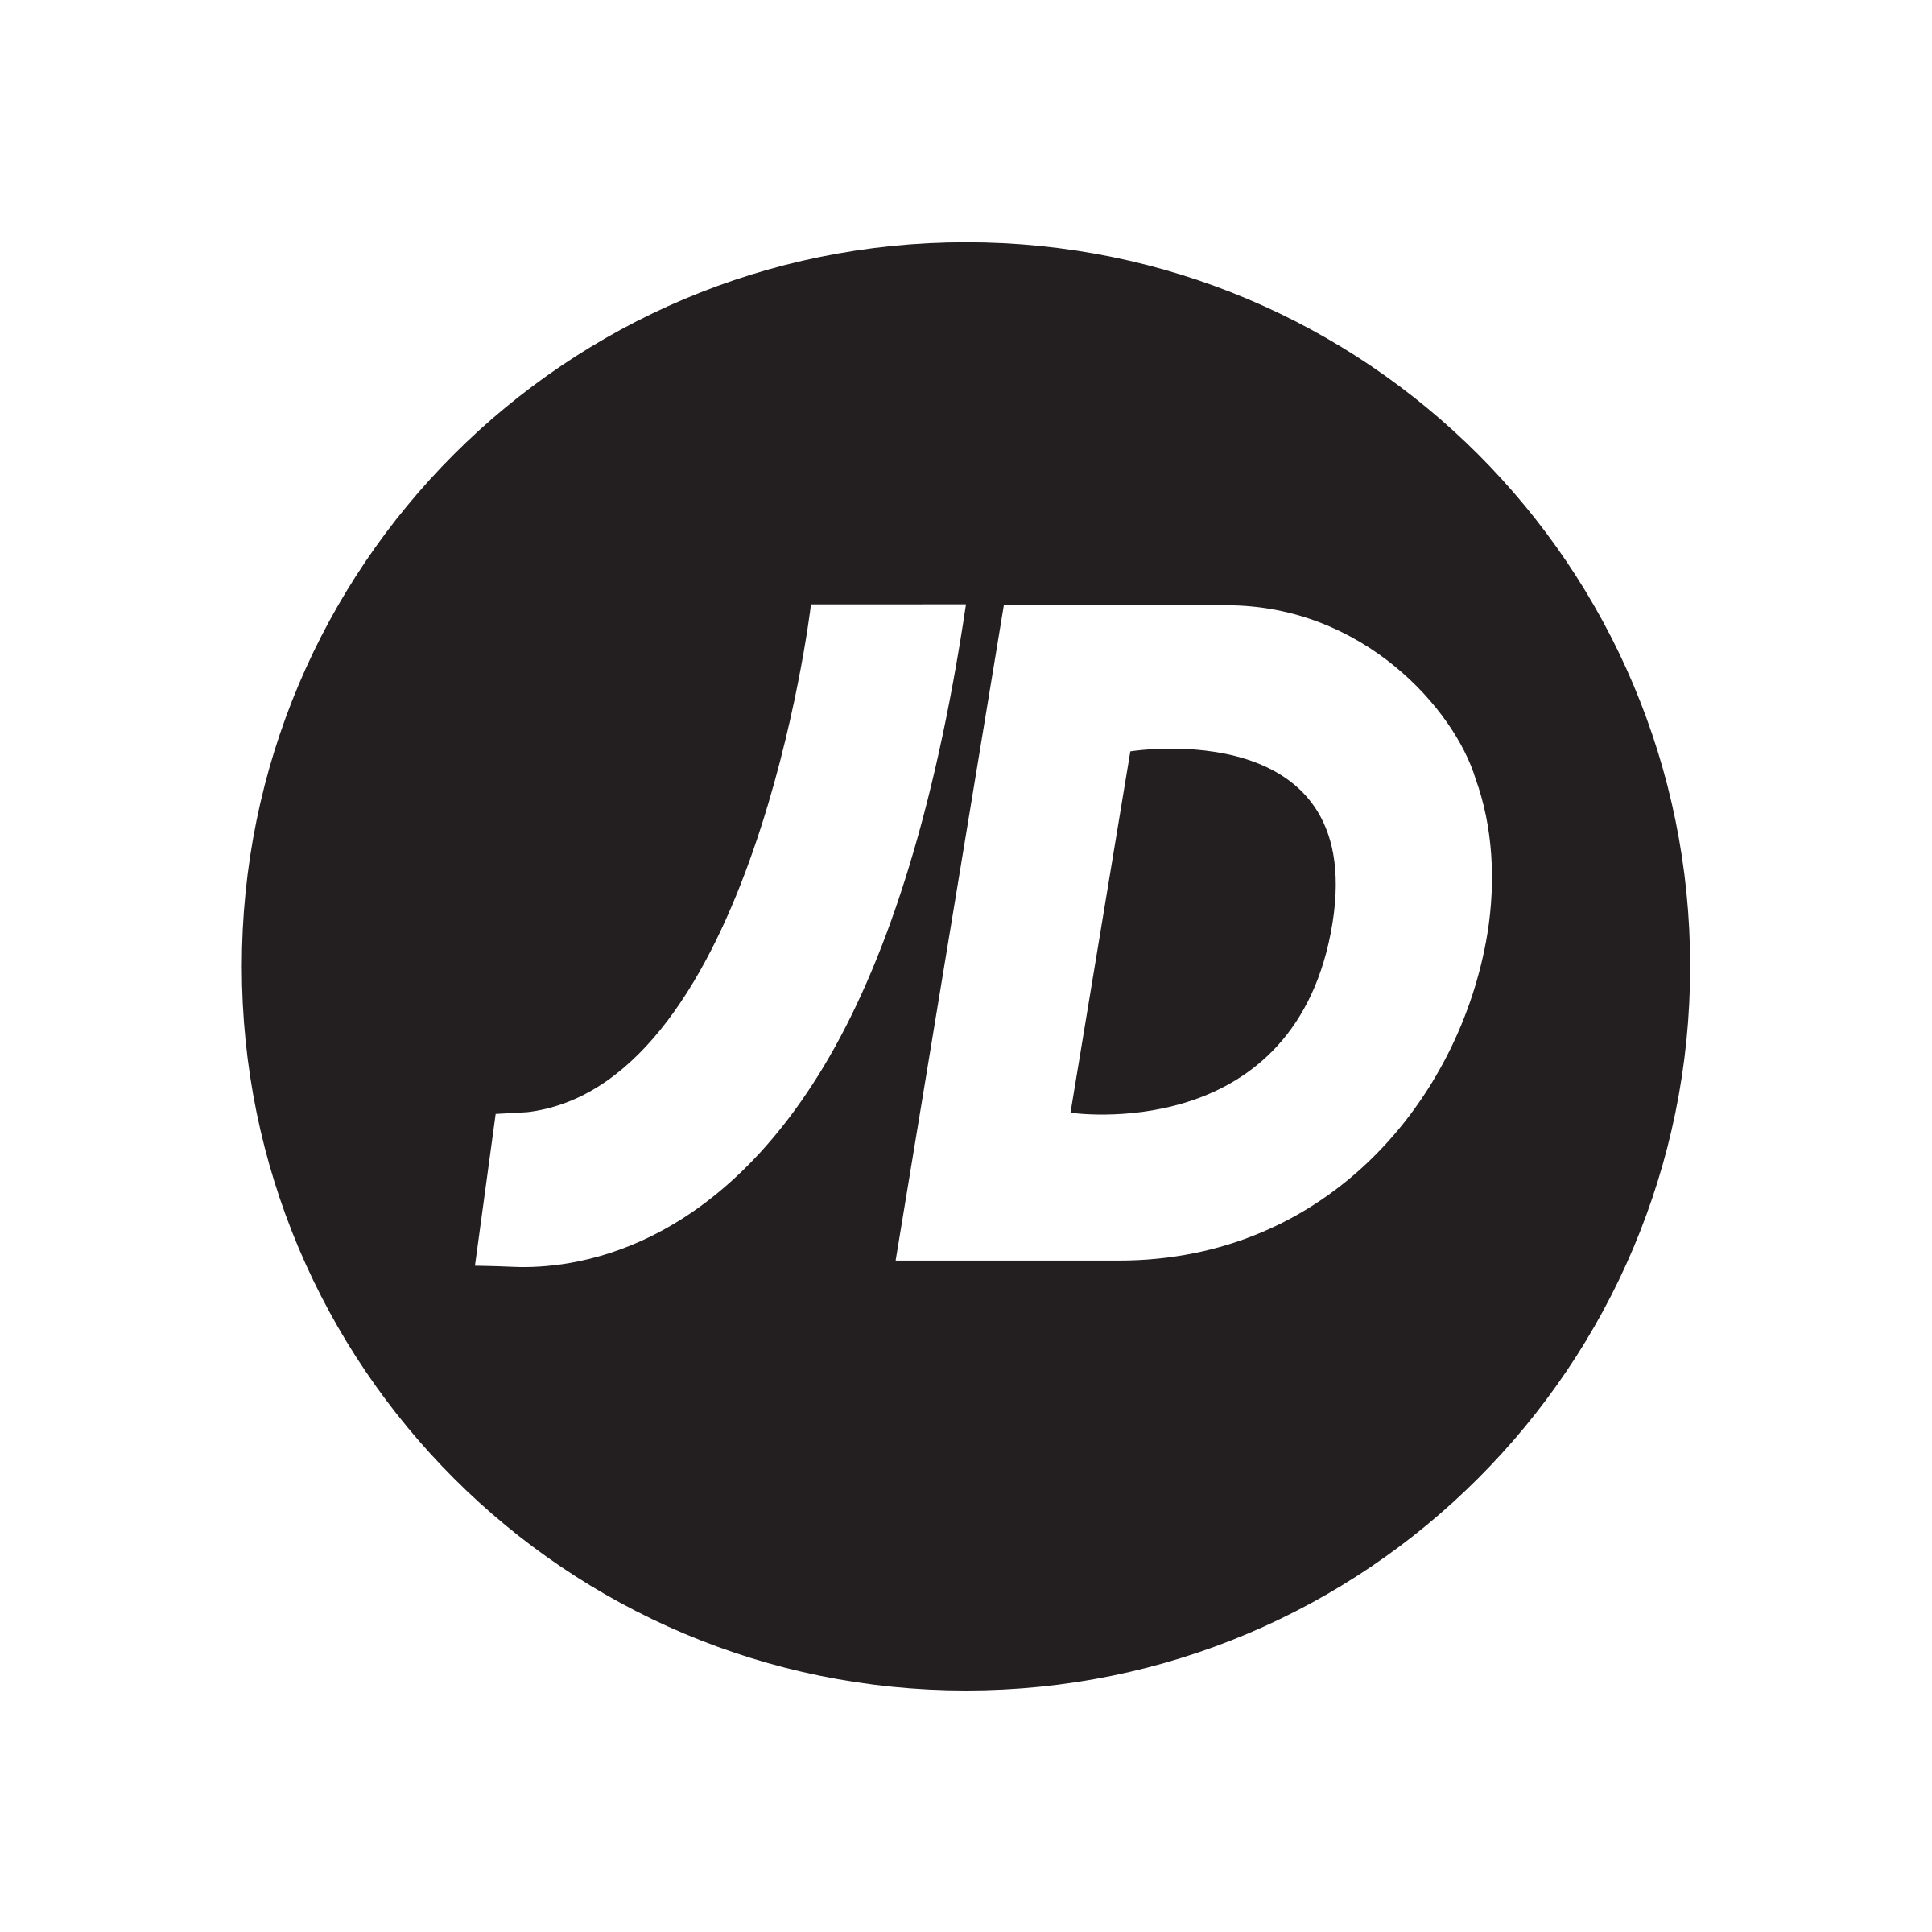 jd-sports-logo-png-transparent